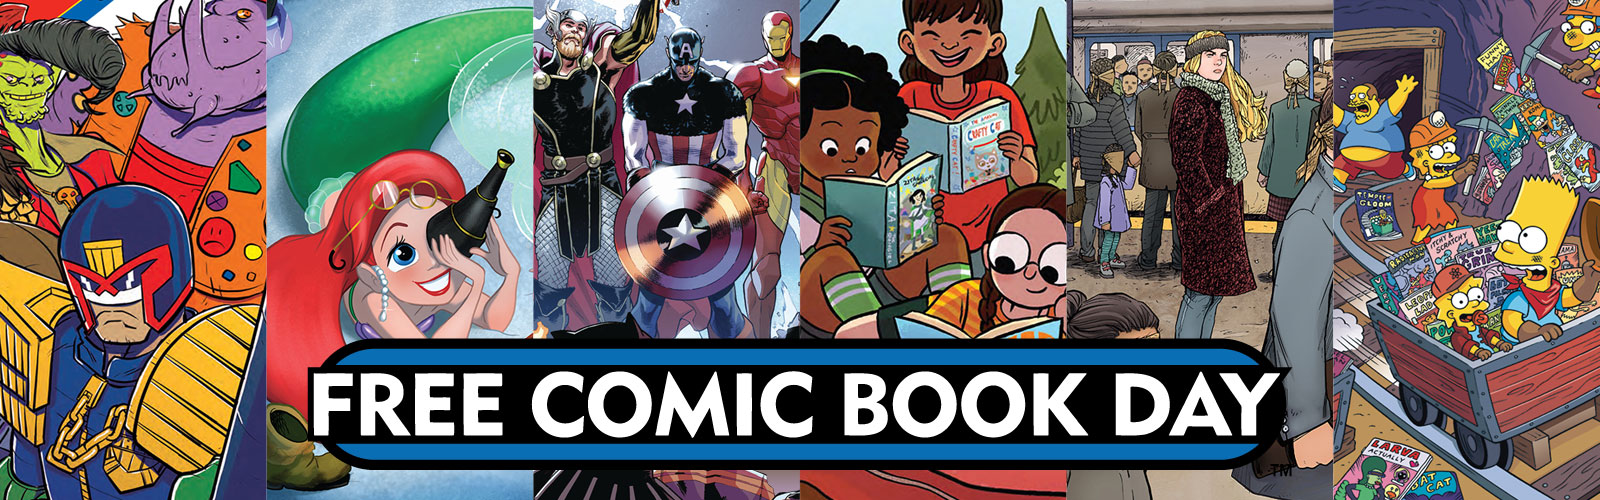 Free Comic Book Day: 5 May 2018